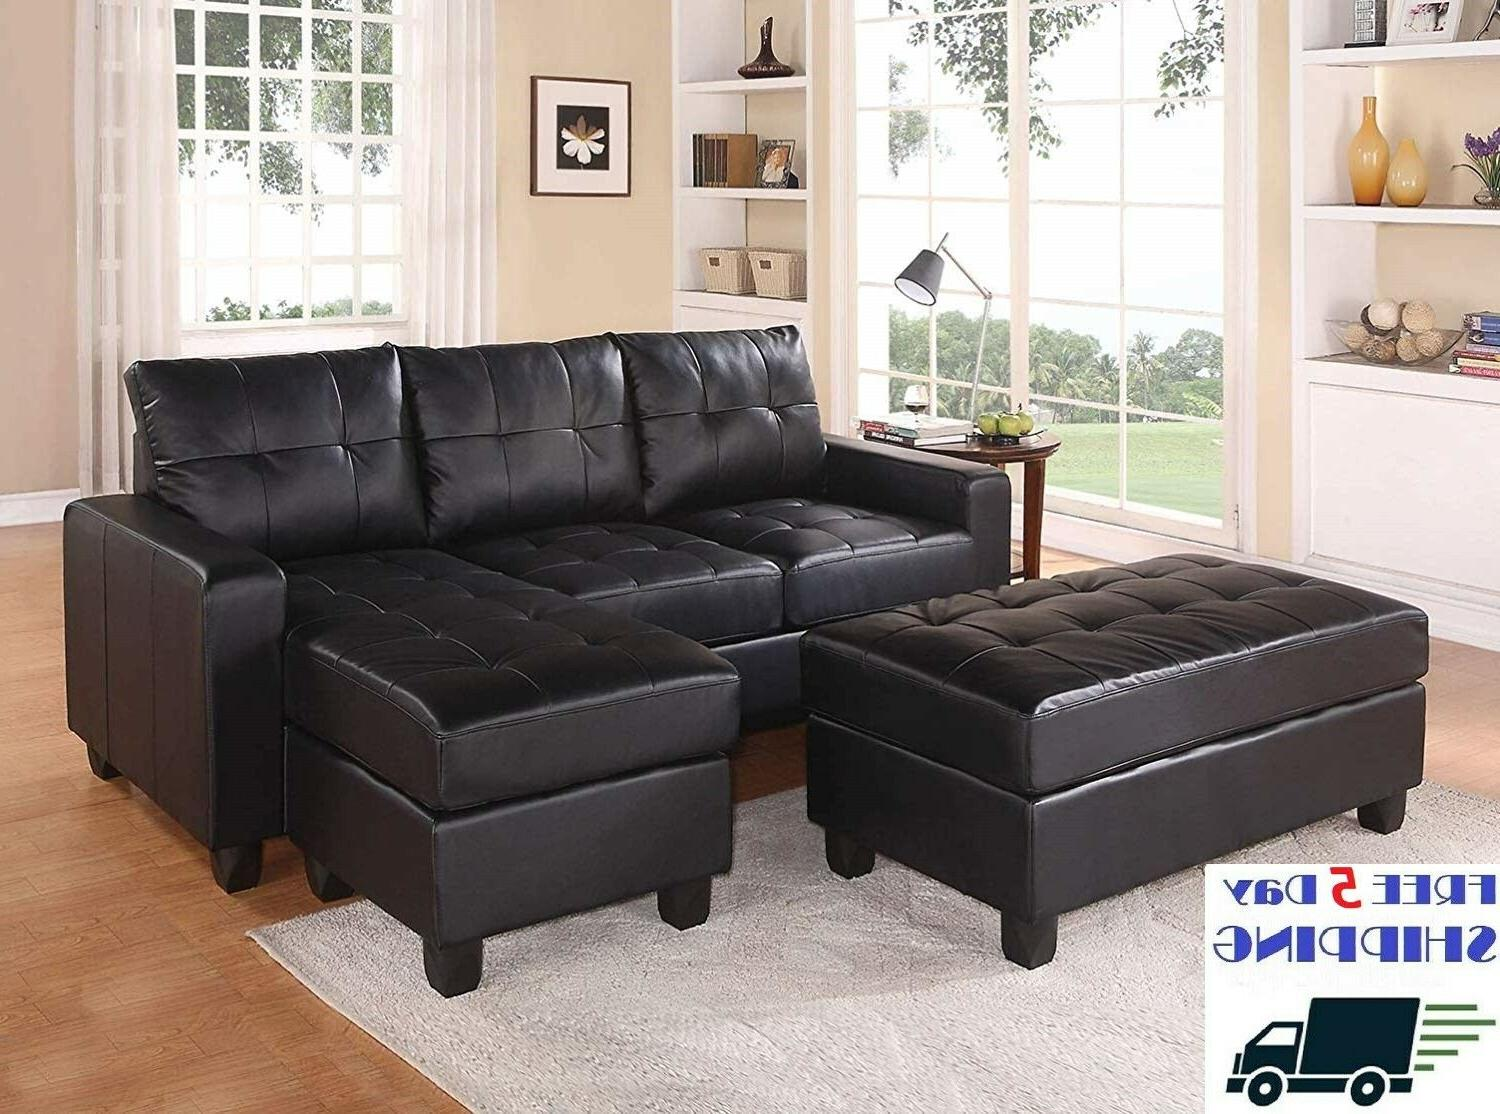 Best Black Bonded Leather Sectional Sofa Reversible Chaise O